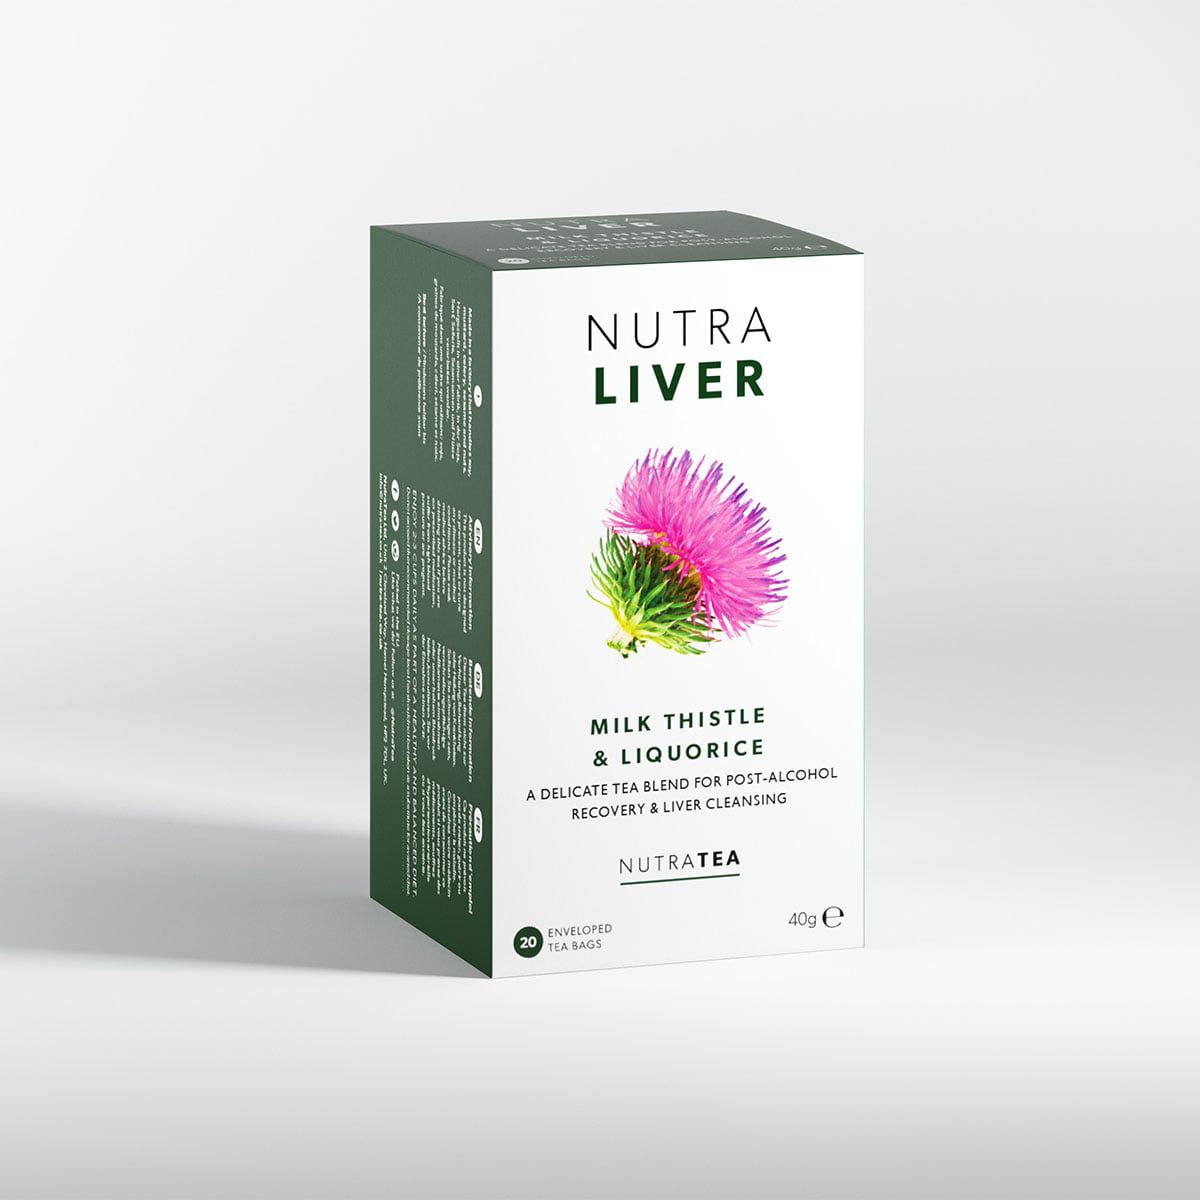 056_Box_NL_Milk Thistle Liquorice_Box_ThreeQuarter